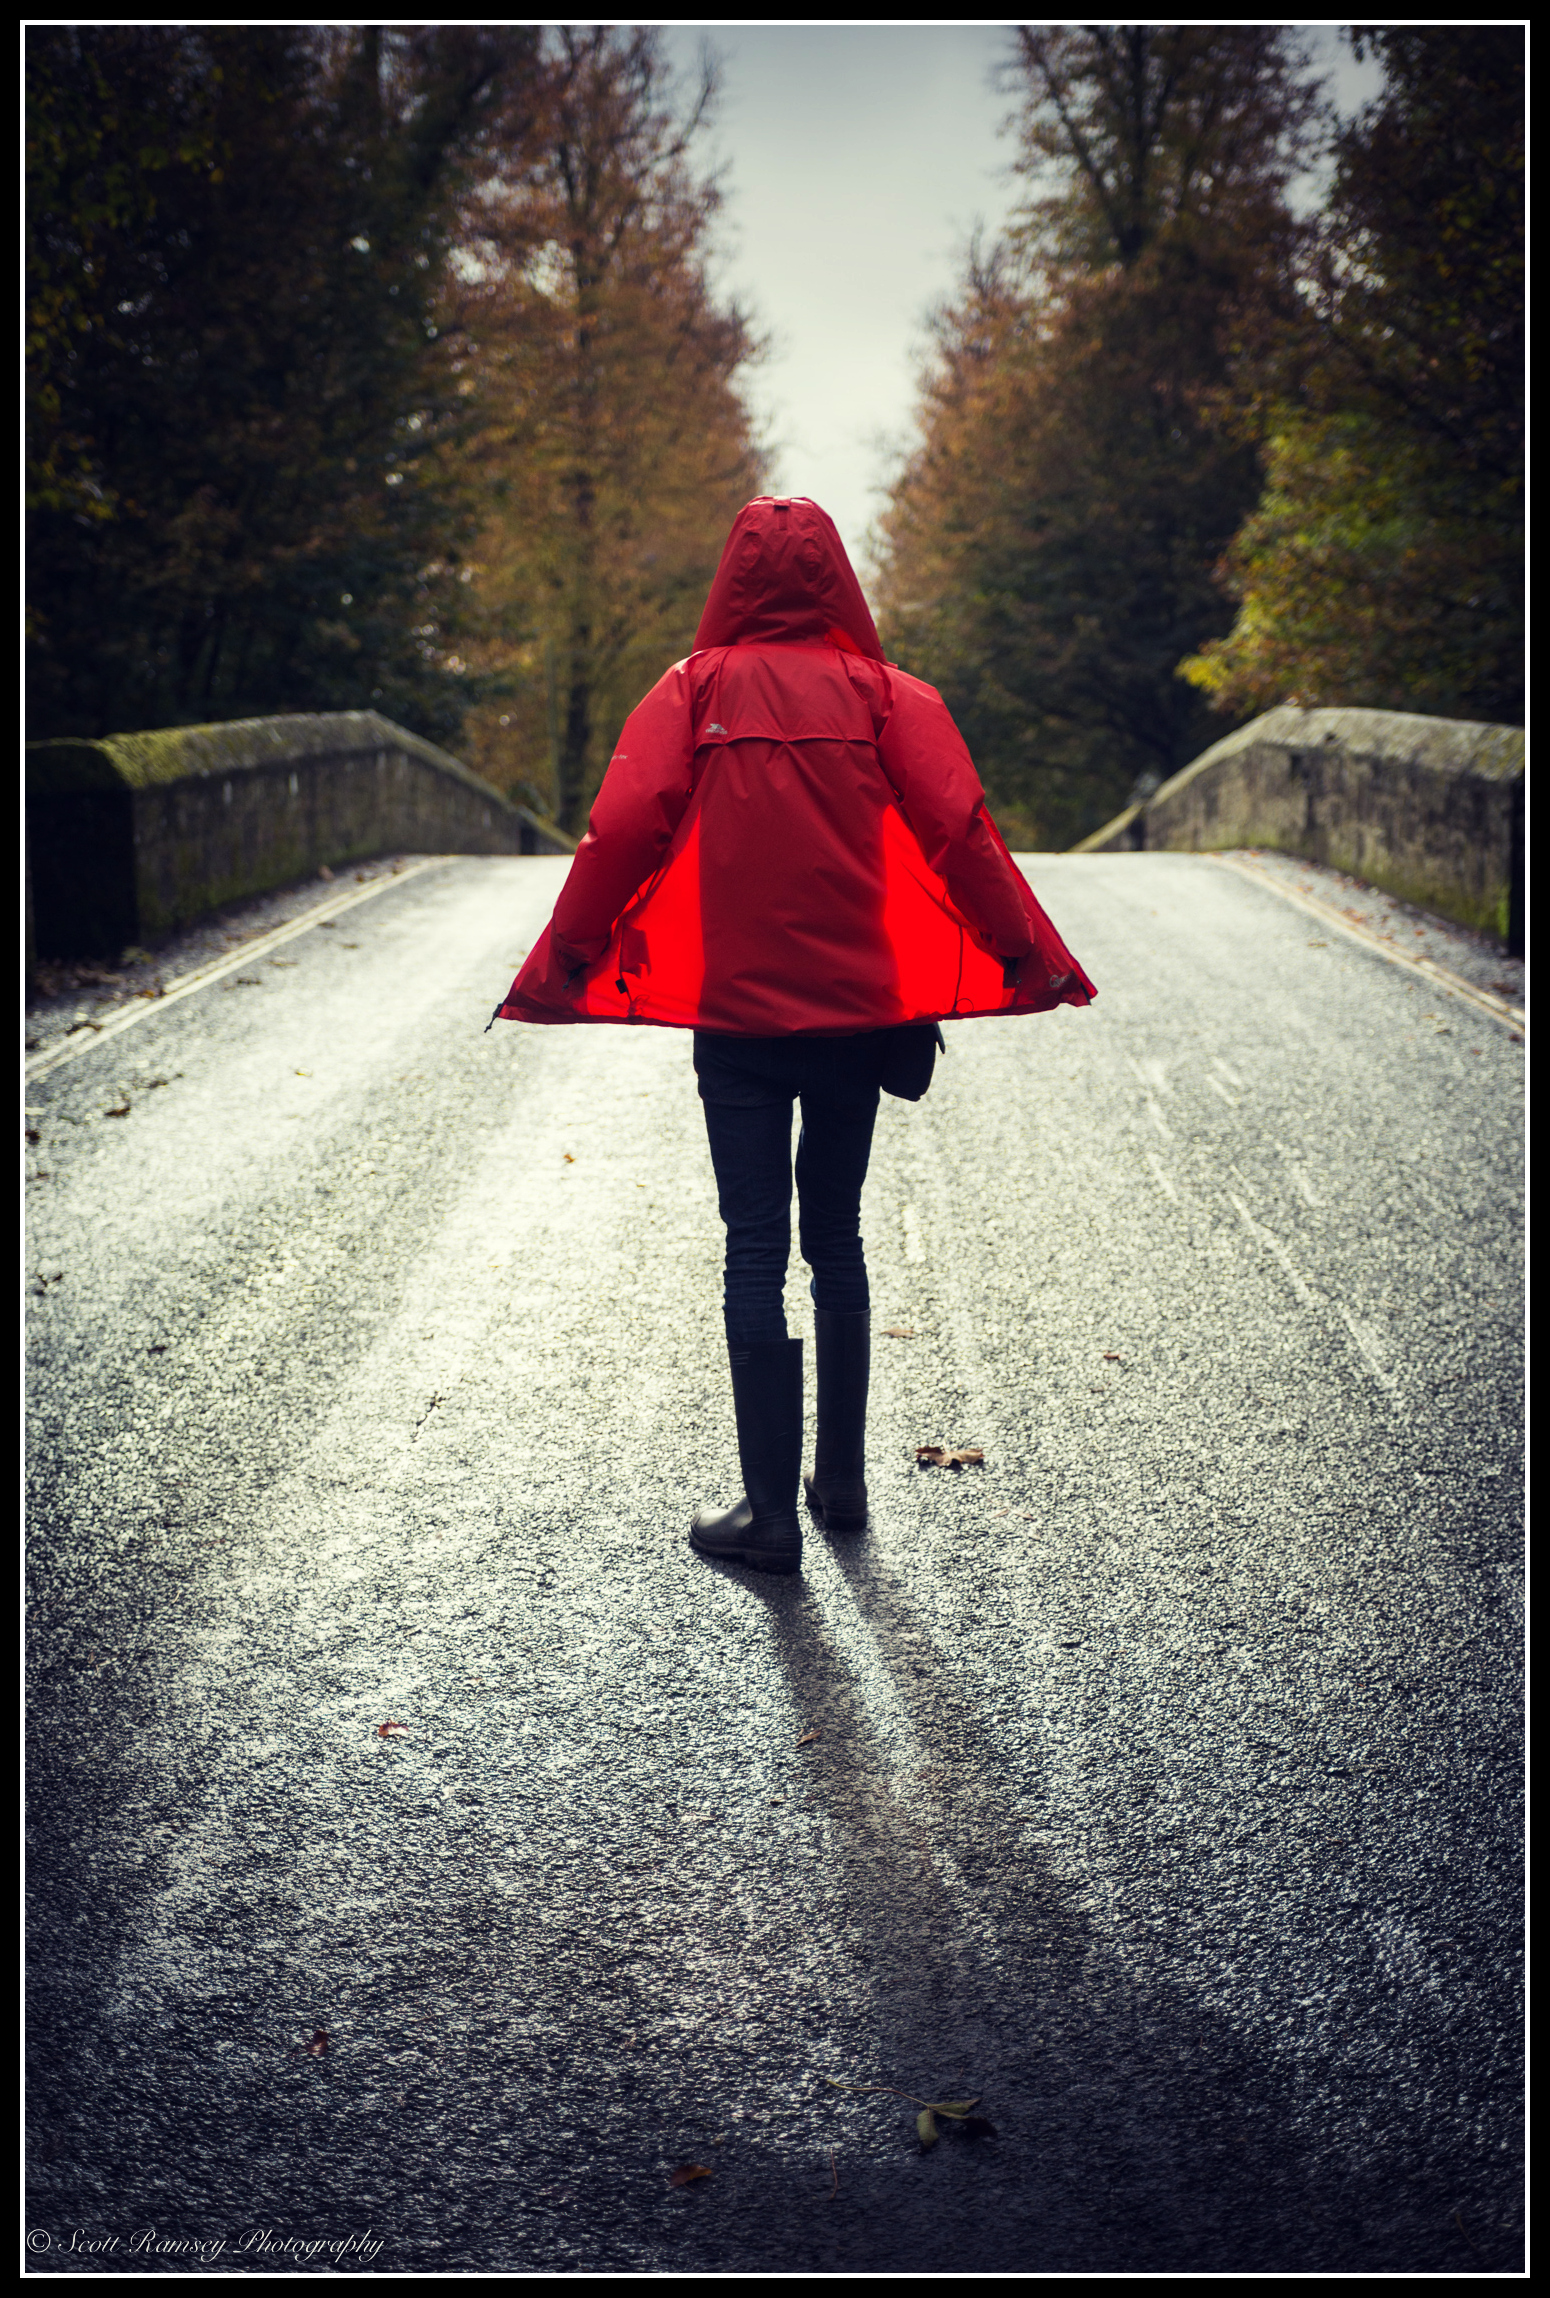 A brief gap in the rain clouds allowed the beautiful autumn light to shine through highlighting the wet road and emphasising the colour of the red coat in this photograph that I took in Arundel, West Sussex © Scott Ramsey Photography